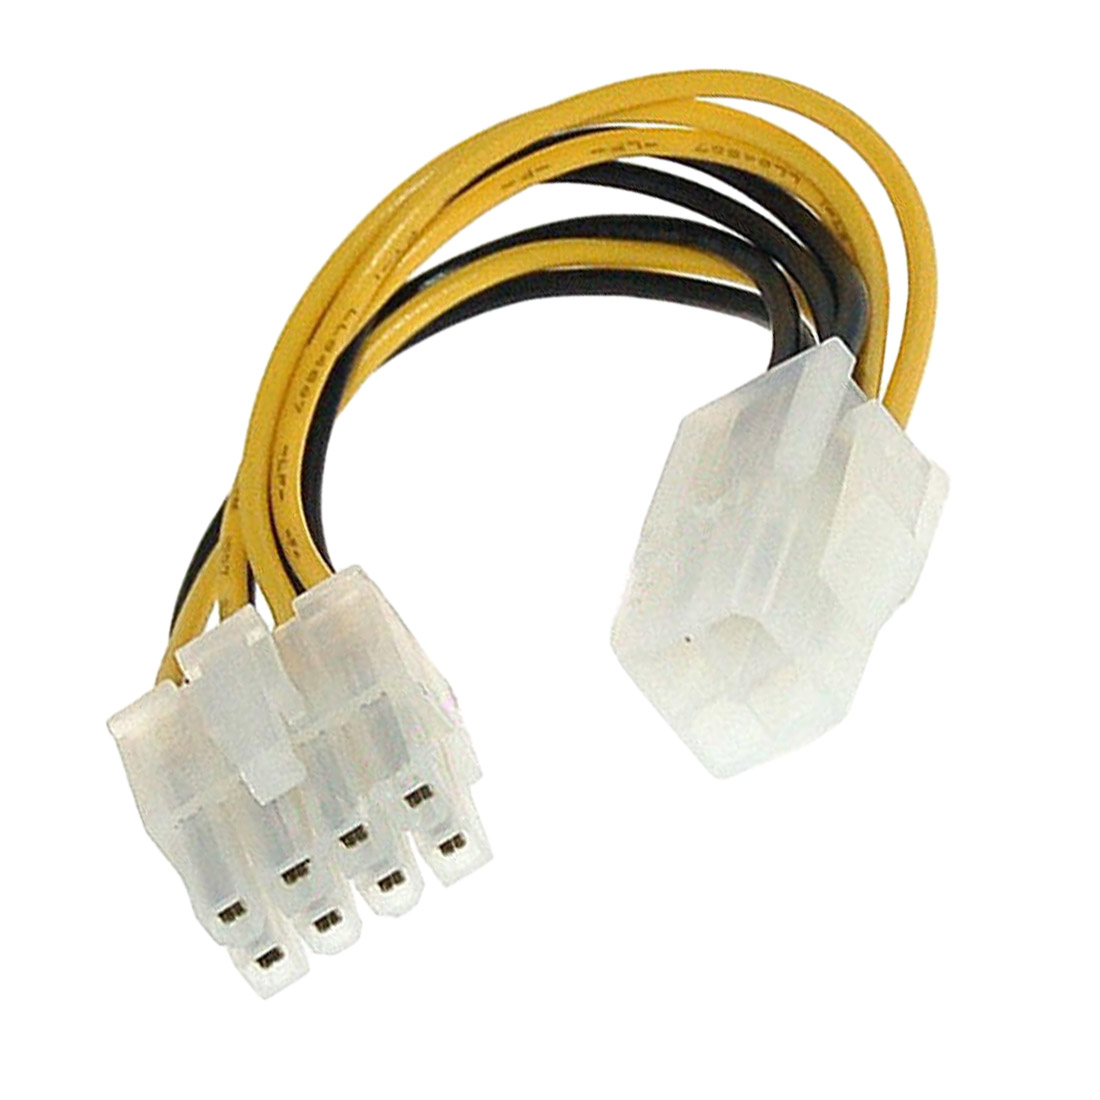 1 PCS 4 Pin Male To 8 Pin Female CPU Power Converter Cable Lead Adapter 4Pin To 8pin  Office Supplies